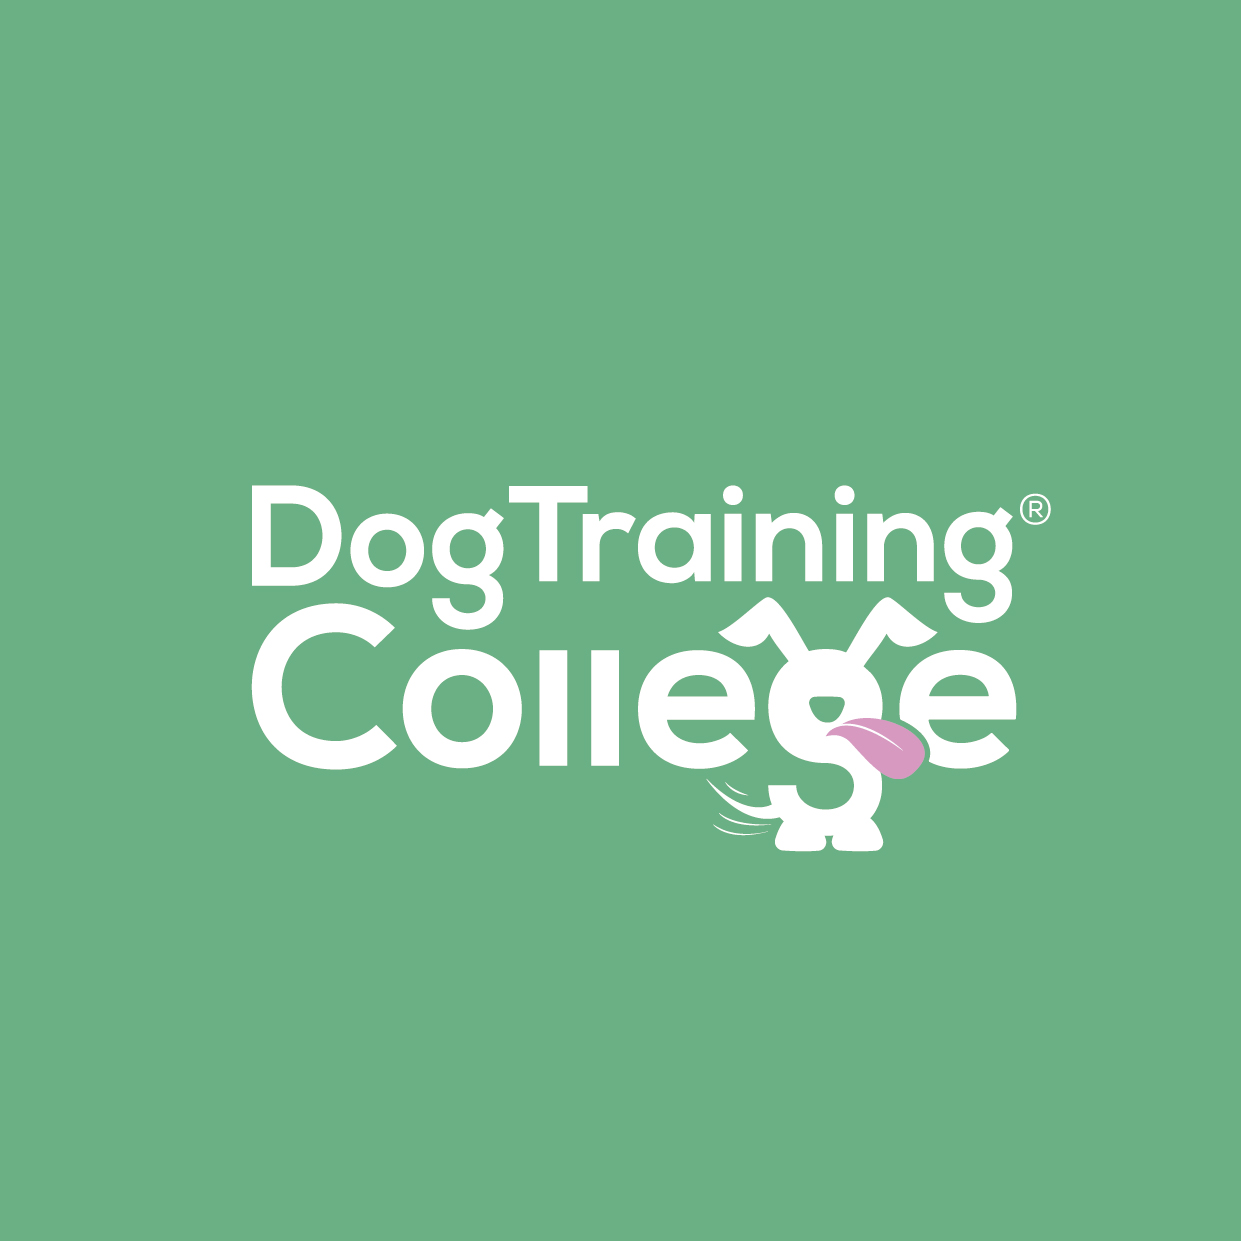 Dog Training College Brand Guidelines 2019-07.jpg